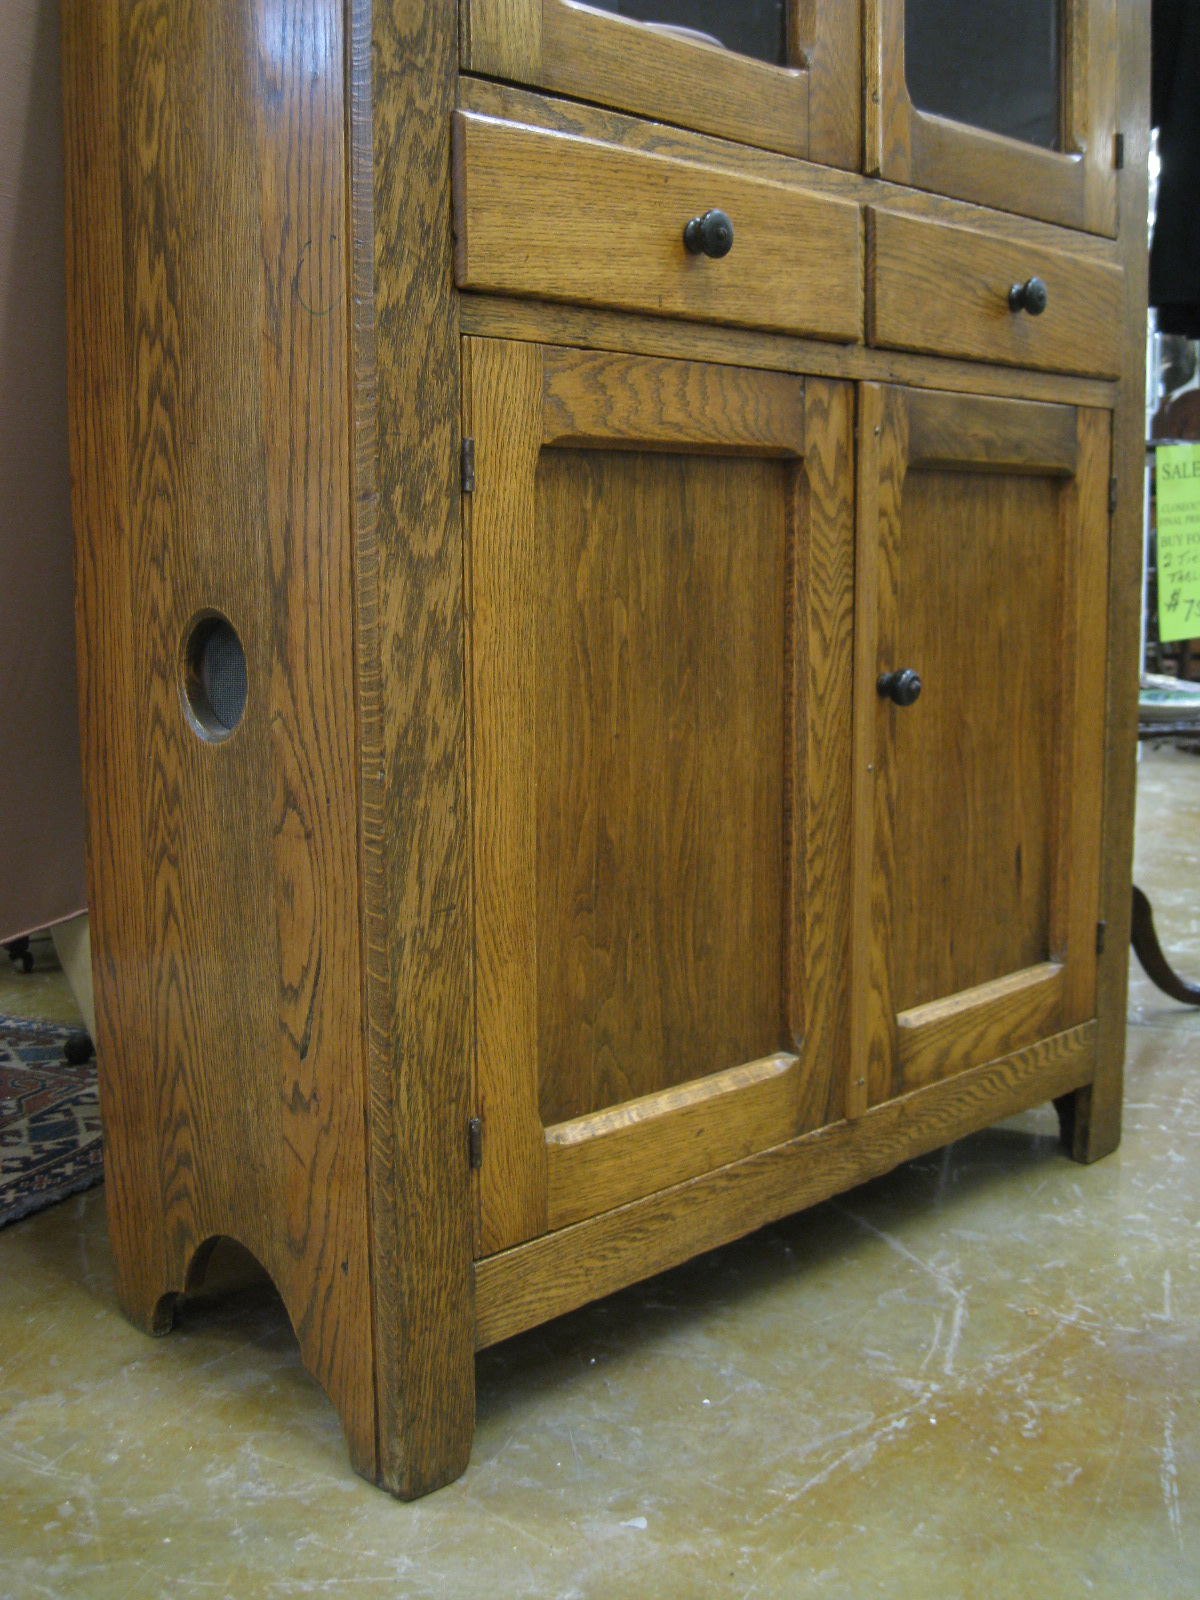 Antiques, Art, and Collectibles: Antique furniture, China cabinet ...